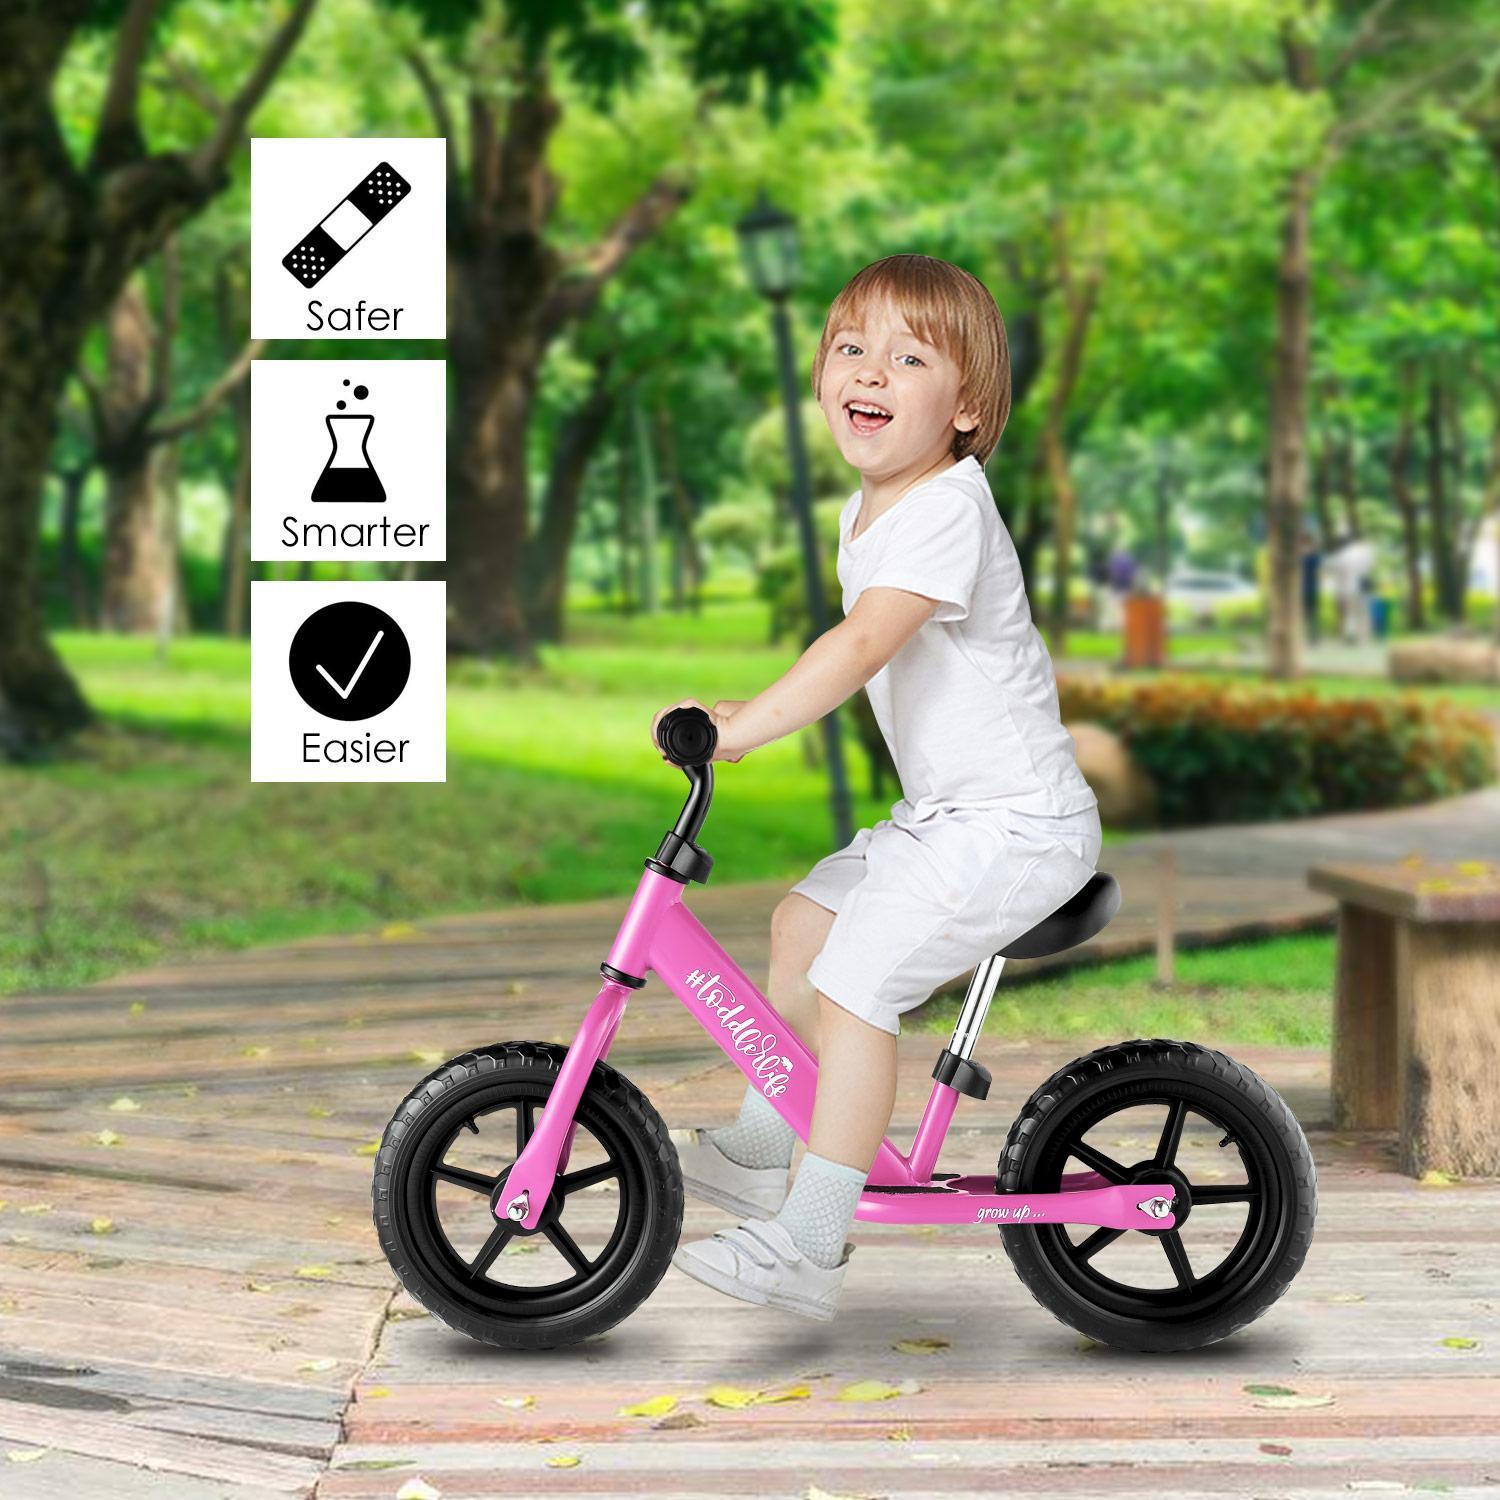 2018 The Newest Baby Balance Bike for Kids Age 3-6 Y/Adjustable Seat and Handle Height-More Suit for Growing Children HITC